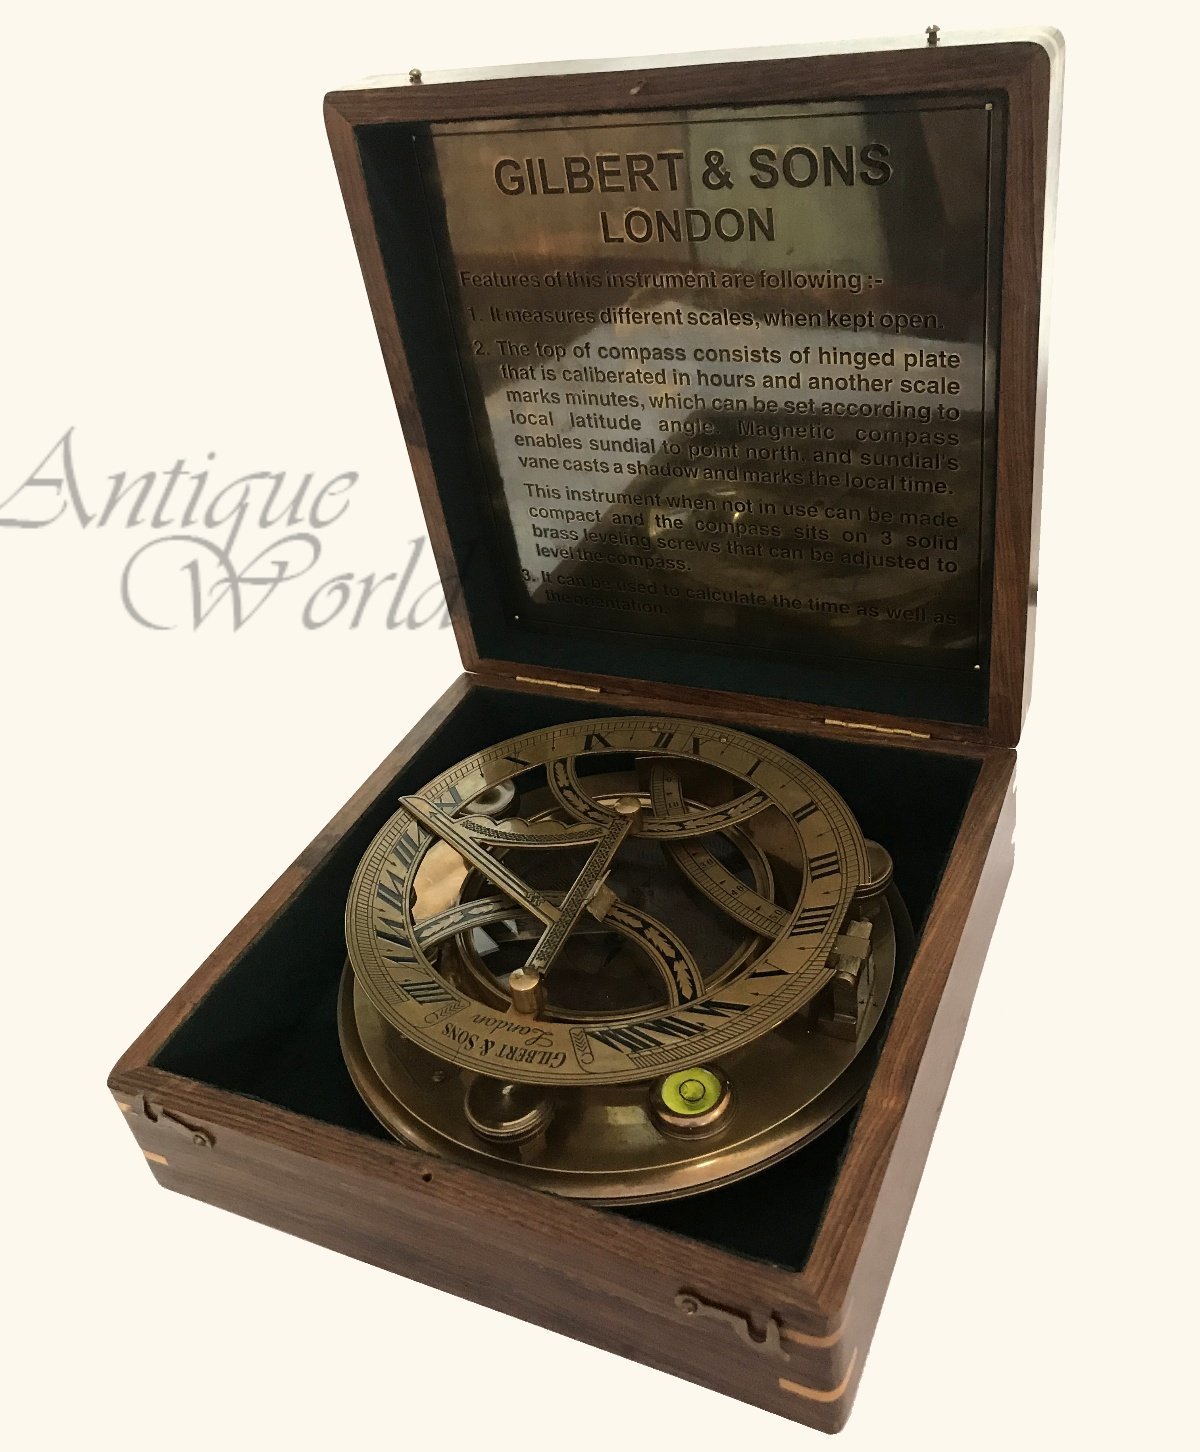 Antiques World Nautical Old Maritime Vintage Brown Antique Brass Collectible Authentic Gilbert & Son London Sunclock Sundial Compass Along With A Box AWUSASC 097